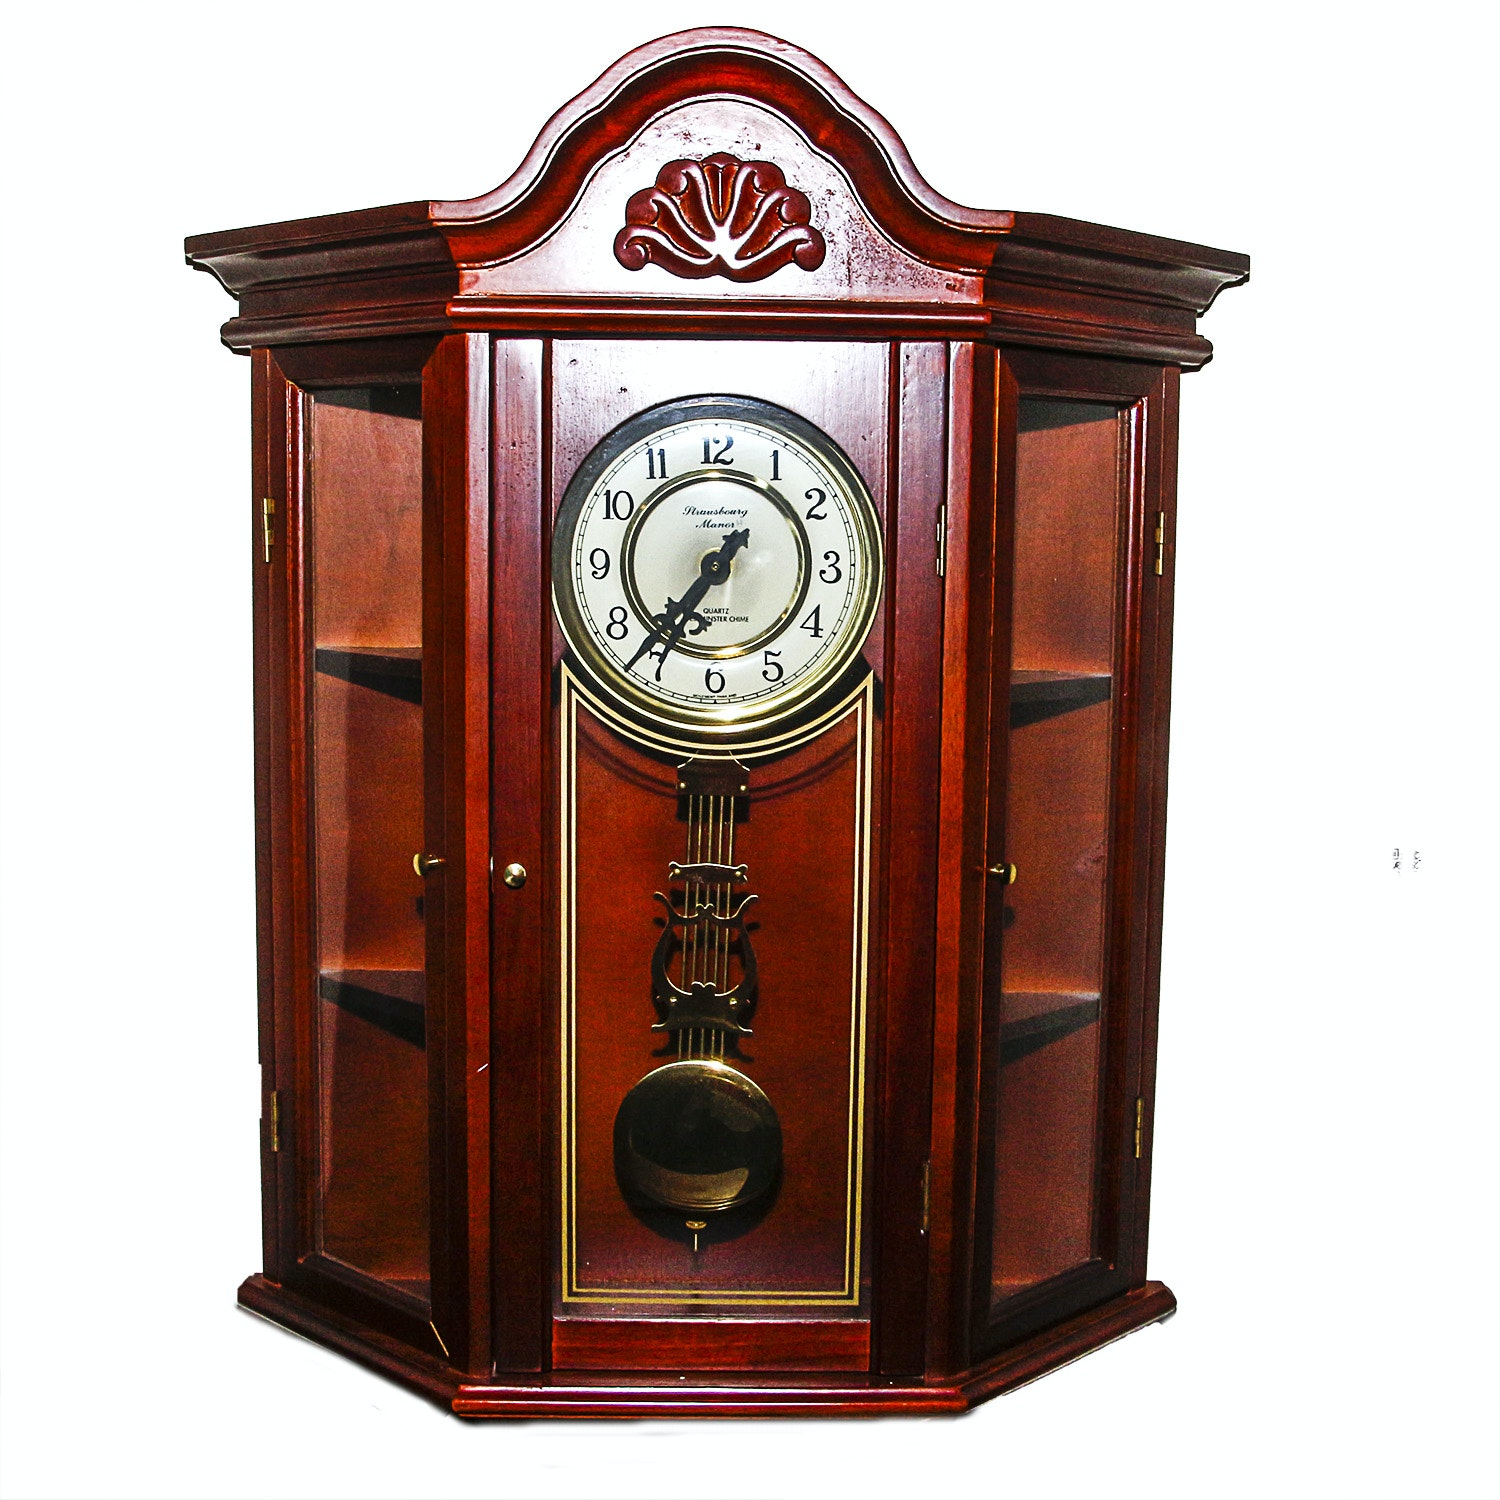 Strausbourg Manor House Westminster Chime Clock